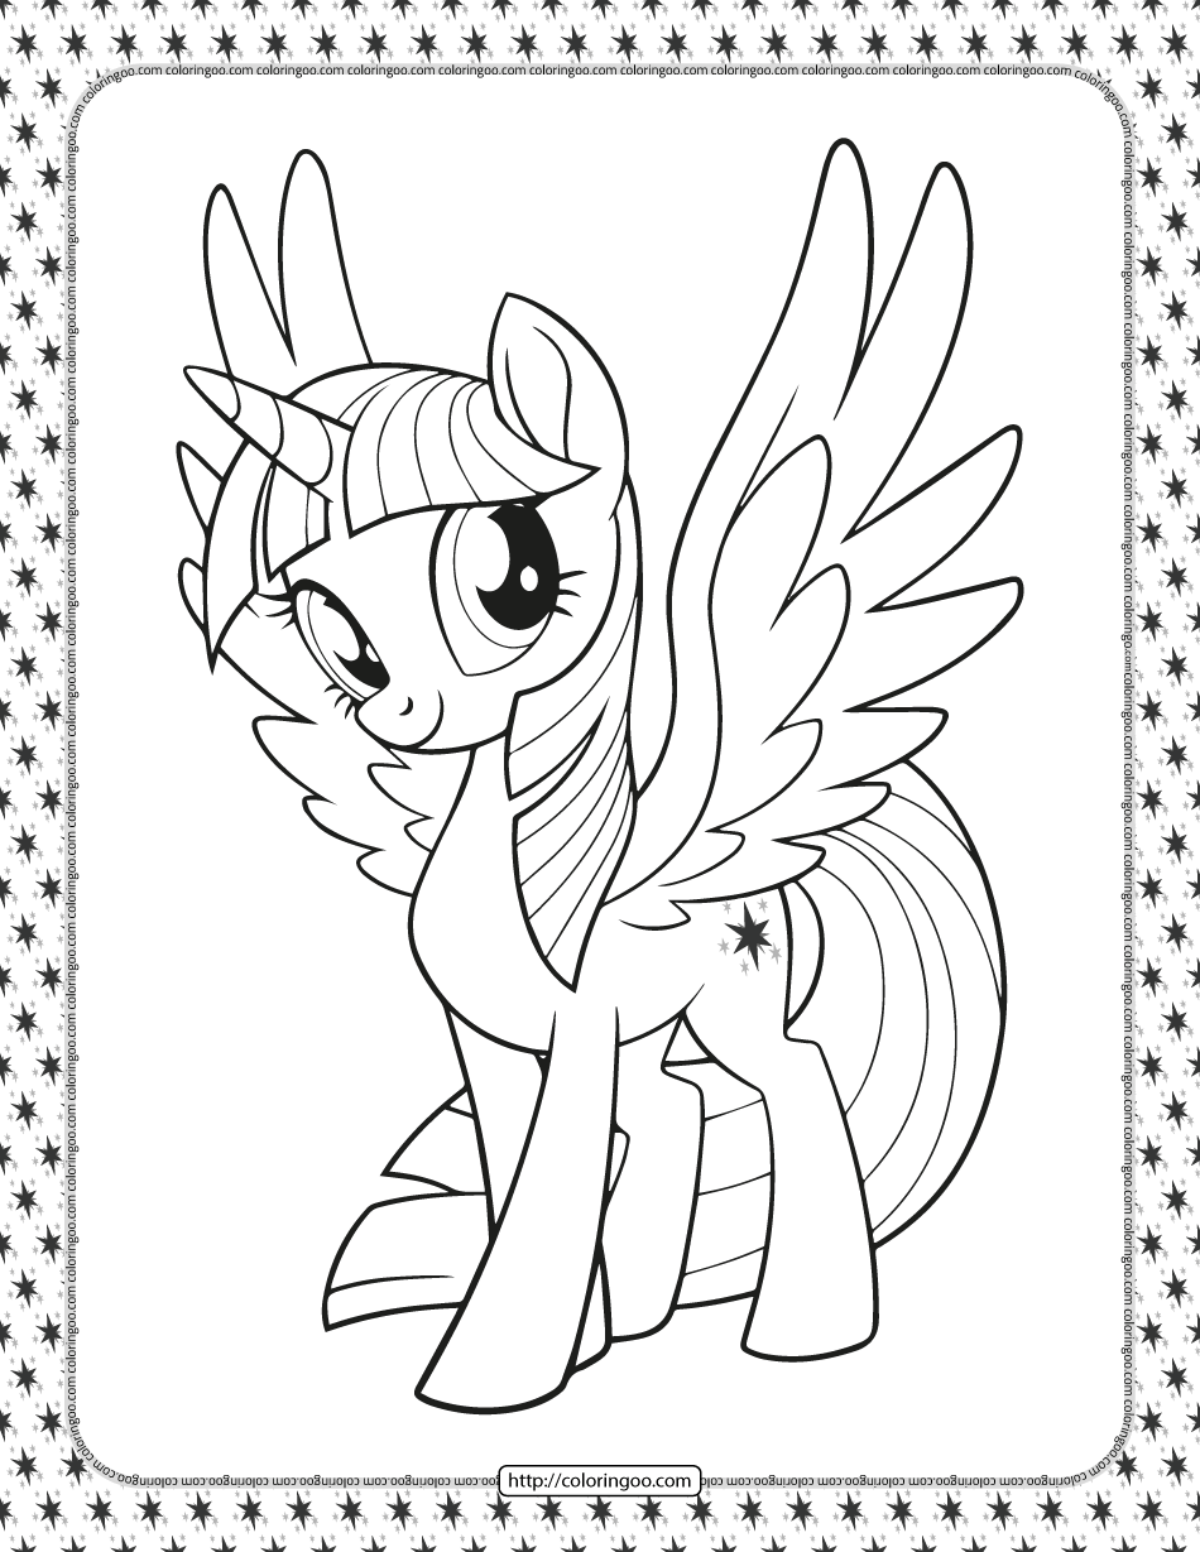 Printable Pony Coloring Pages : printable, coloring, pages, Printable, Little, Twilight, Sparkle, Coloring, Pages